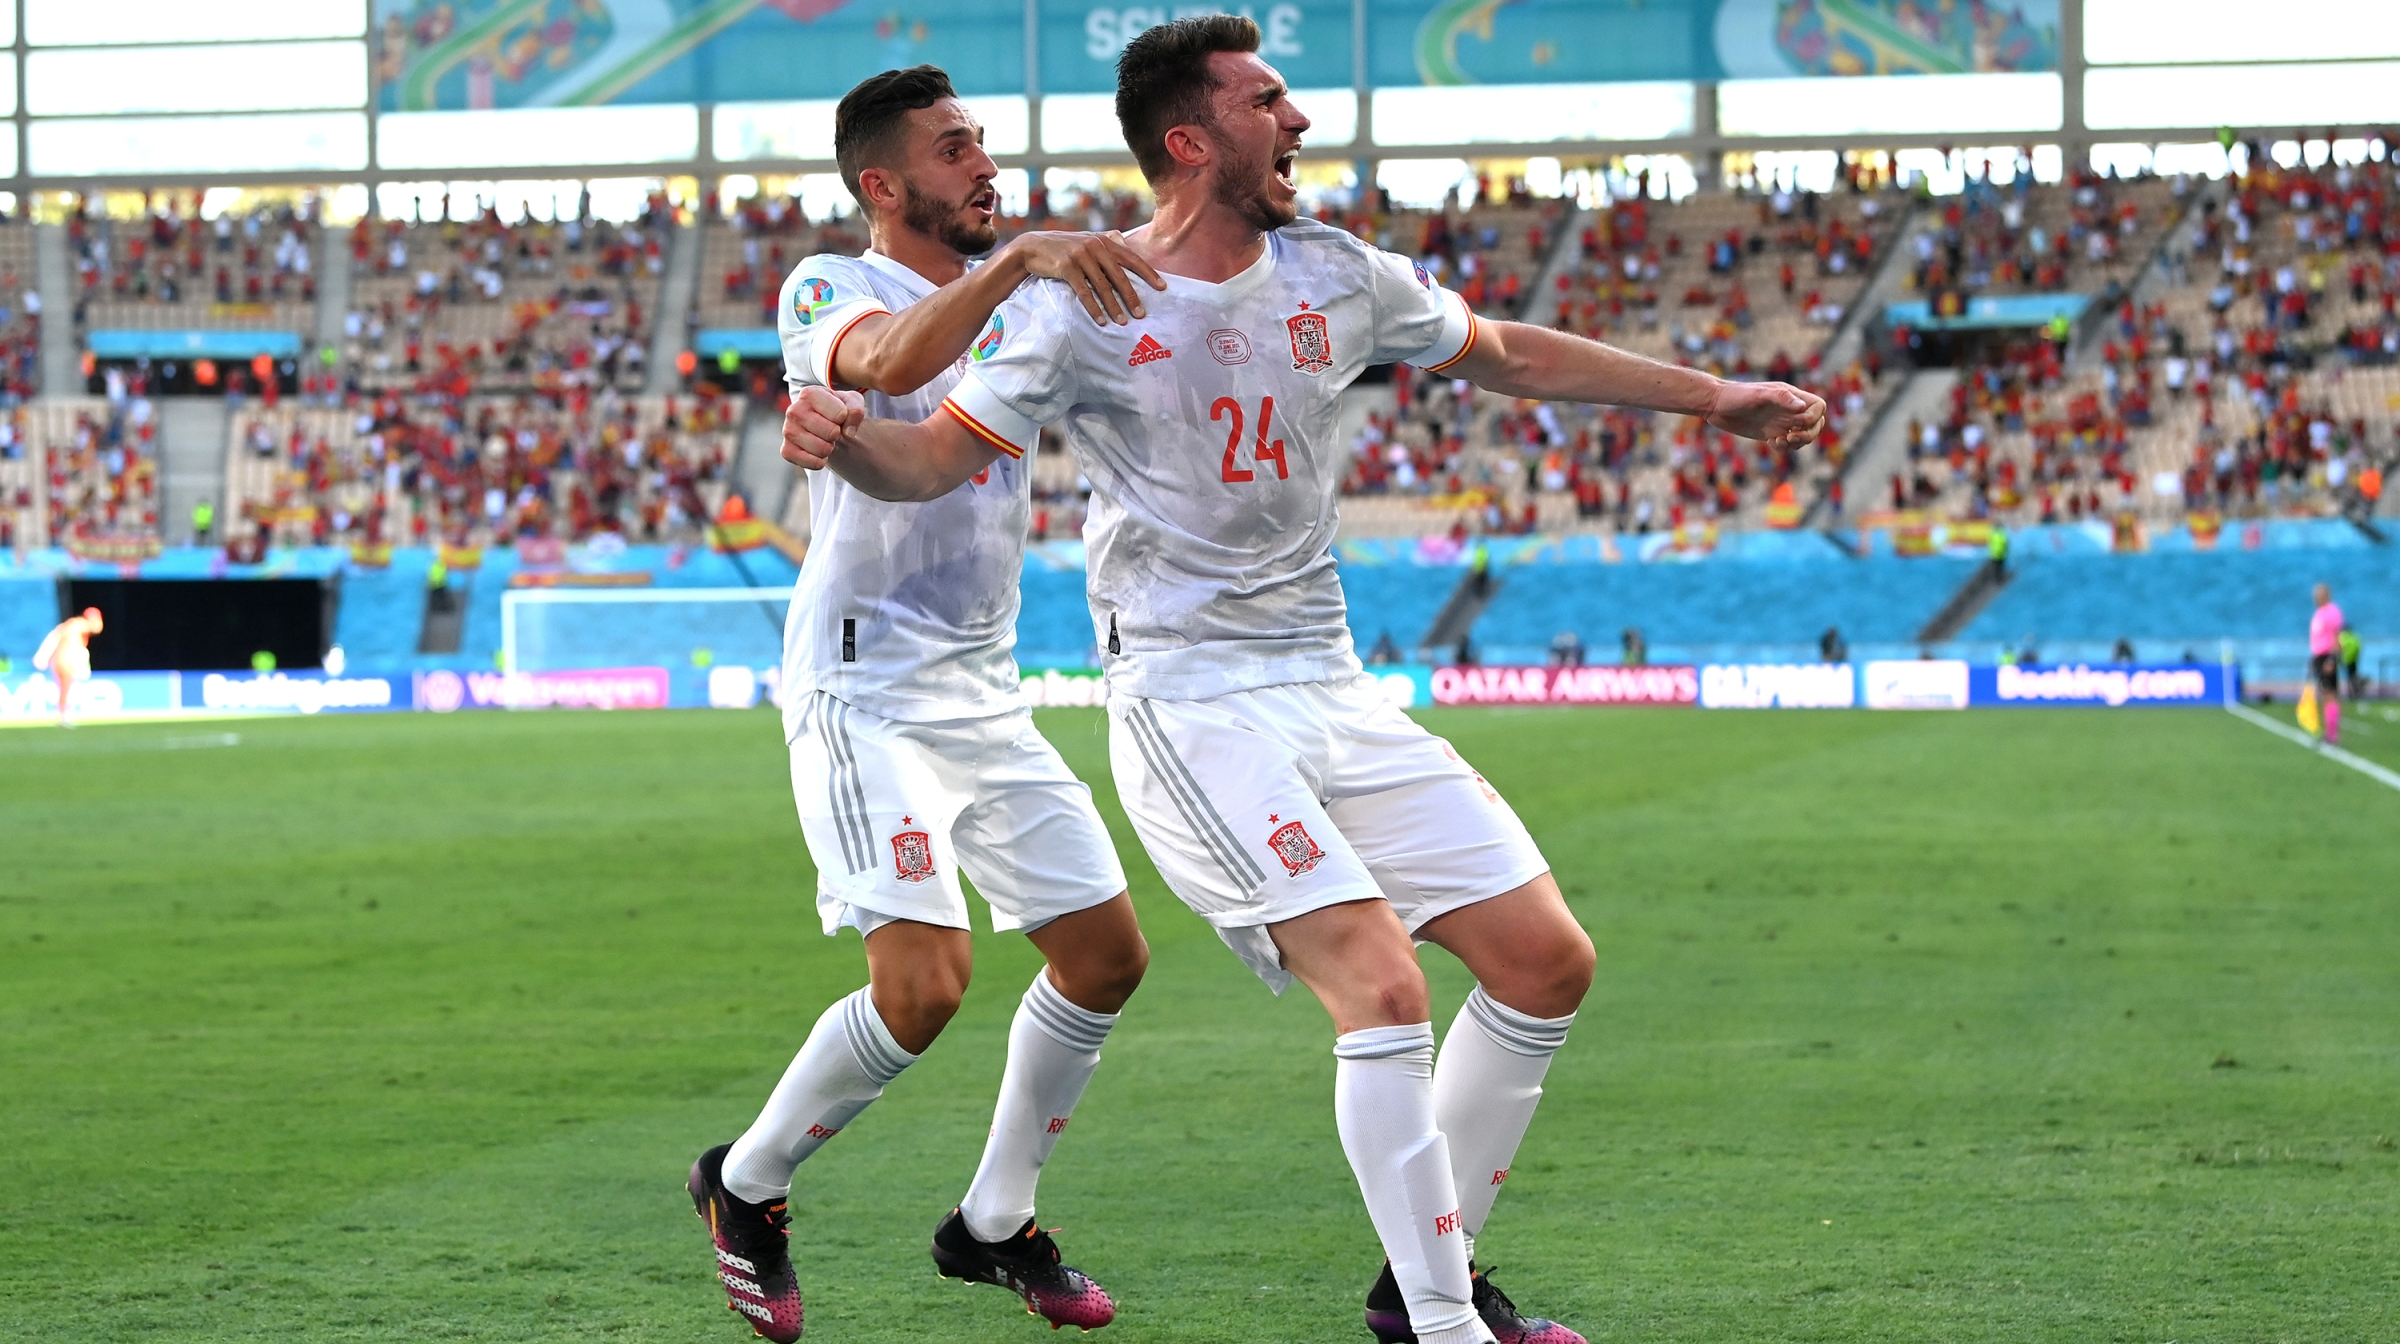 Aymeric Laporte of Spain celebrates with Koke after scoring their side's second goal during the UEFA Euro 2020 Championship Group E match between Slovakia and Spain at Estadio La Cartuja on June 23, 2021 in Seville, Spain.